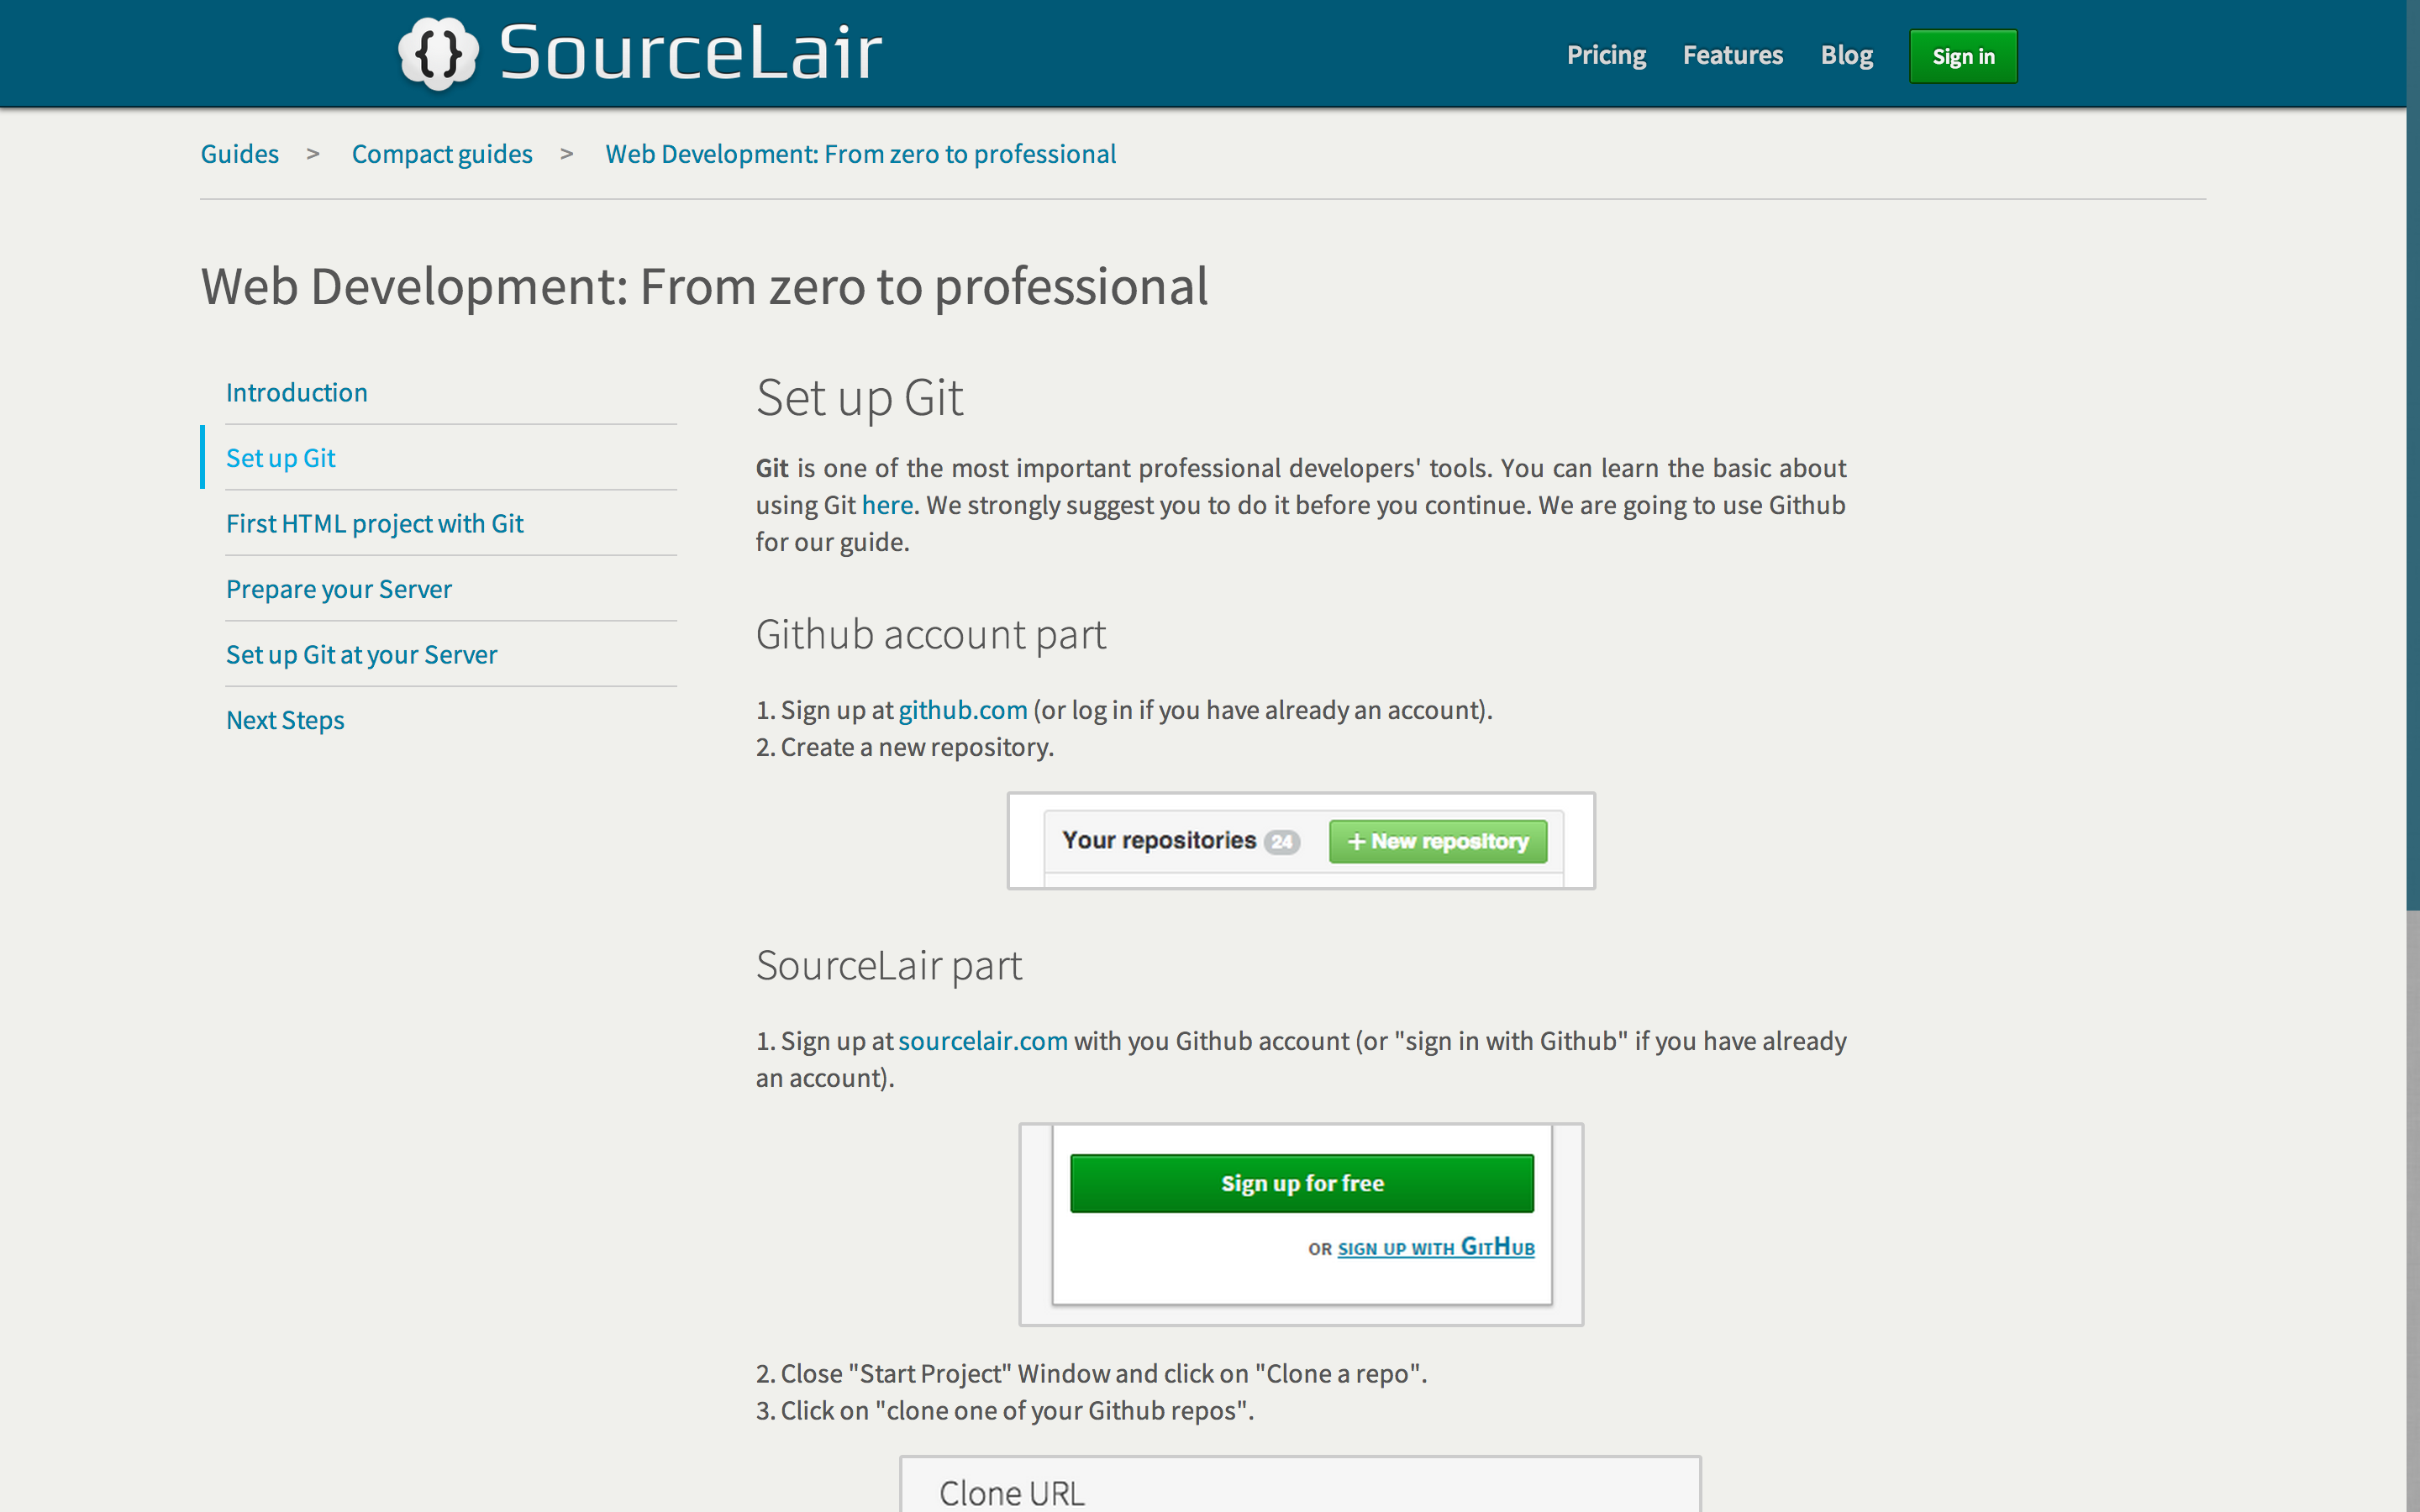 Web Development: From zero to professional | SourceLair Blog